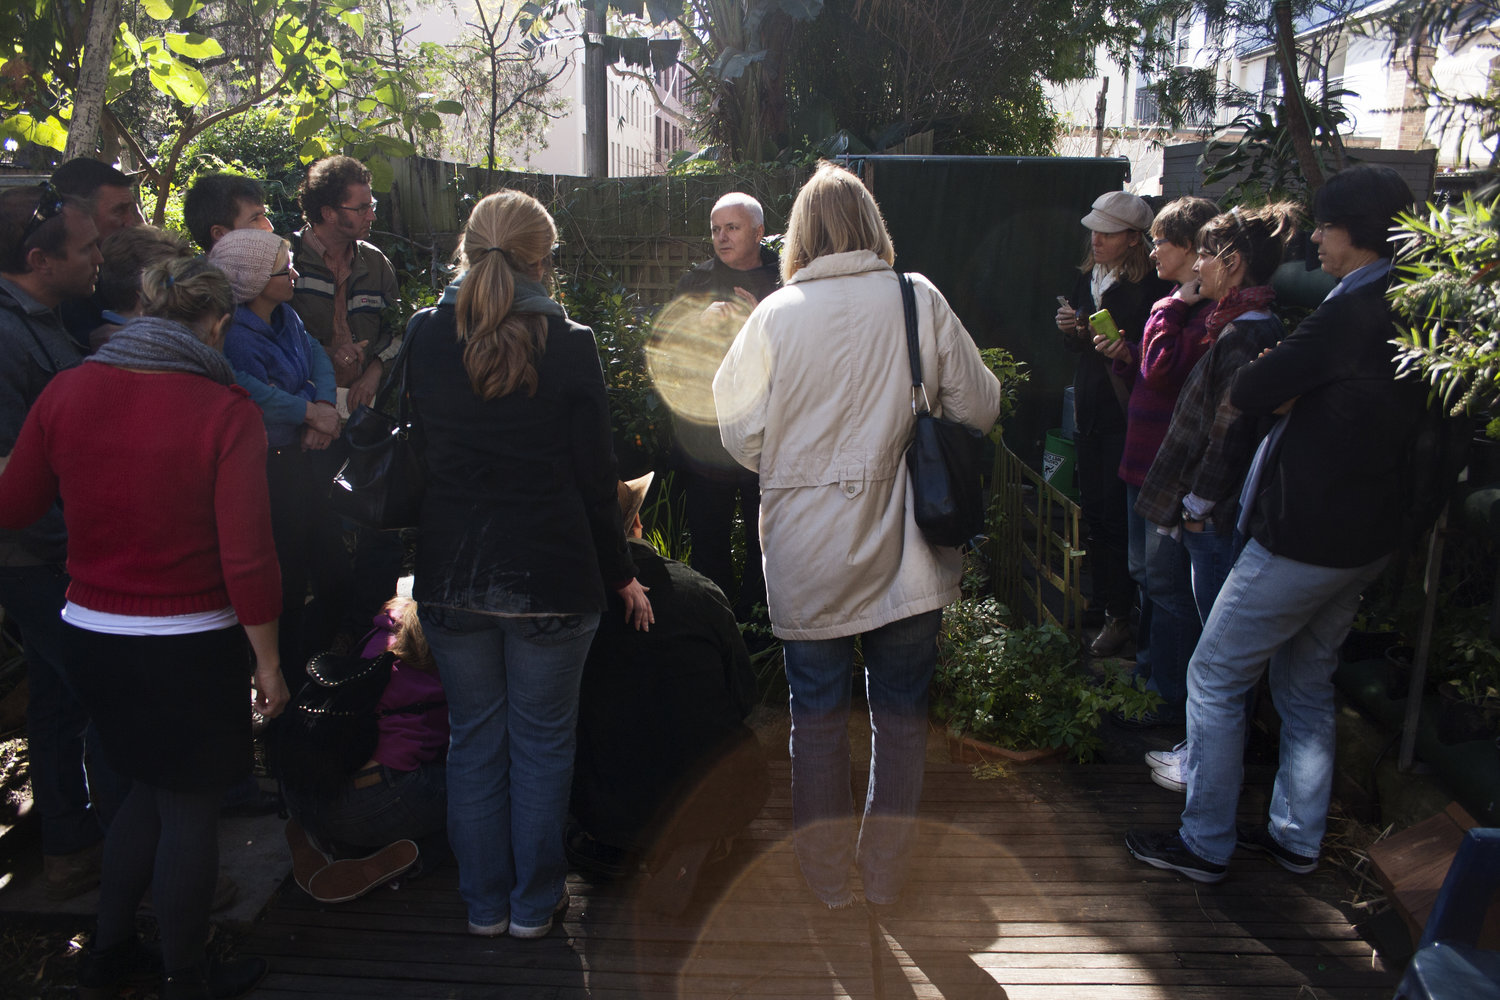 A tour group in the garden of Sydney's Sustainable House